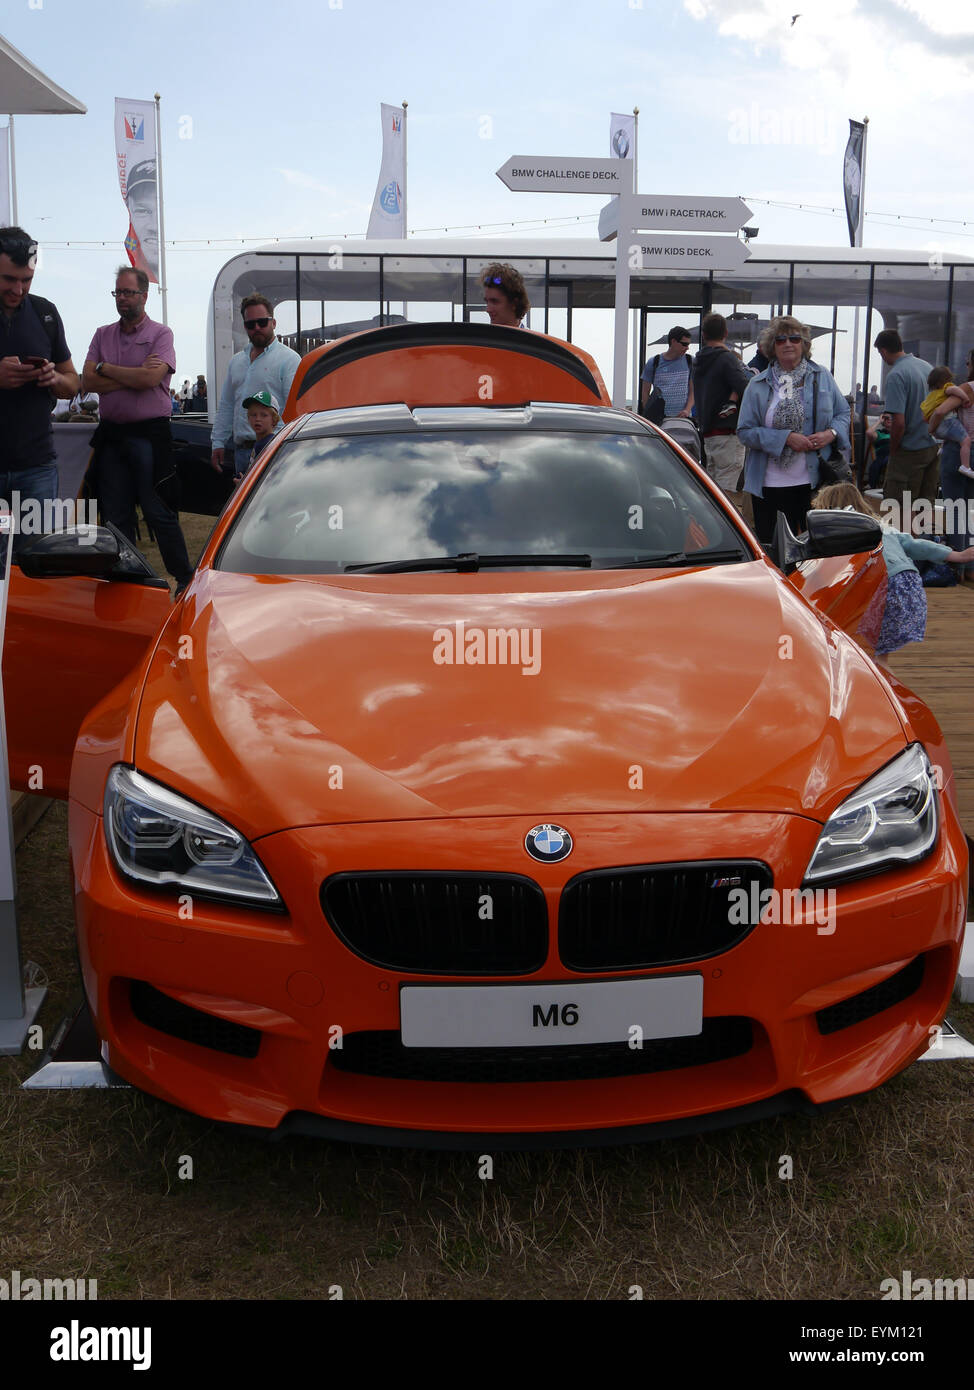 BMW M6 Coupé on display at a motorshow - Stock Image